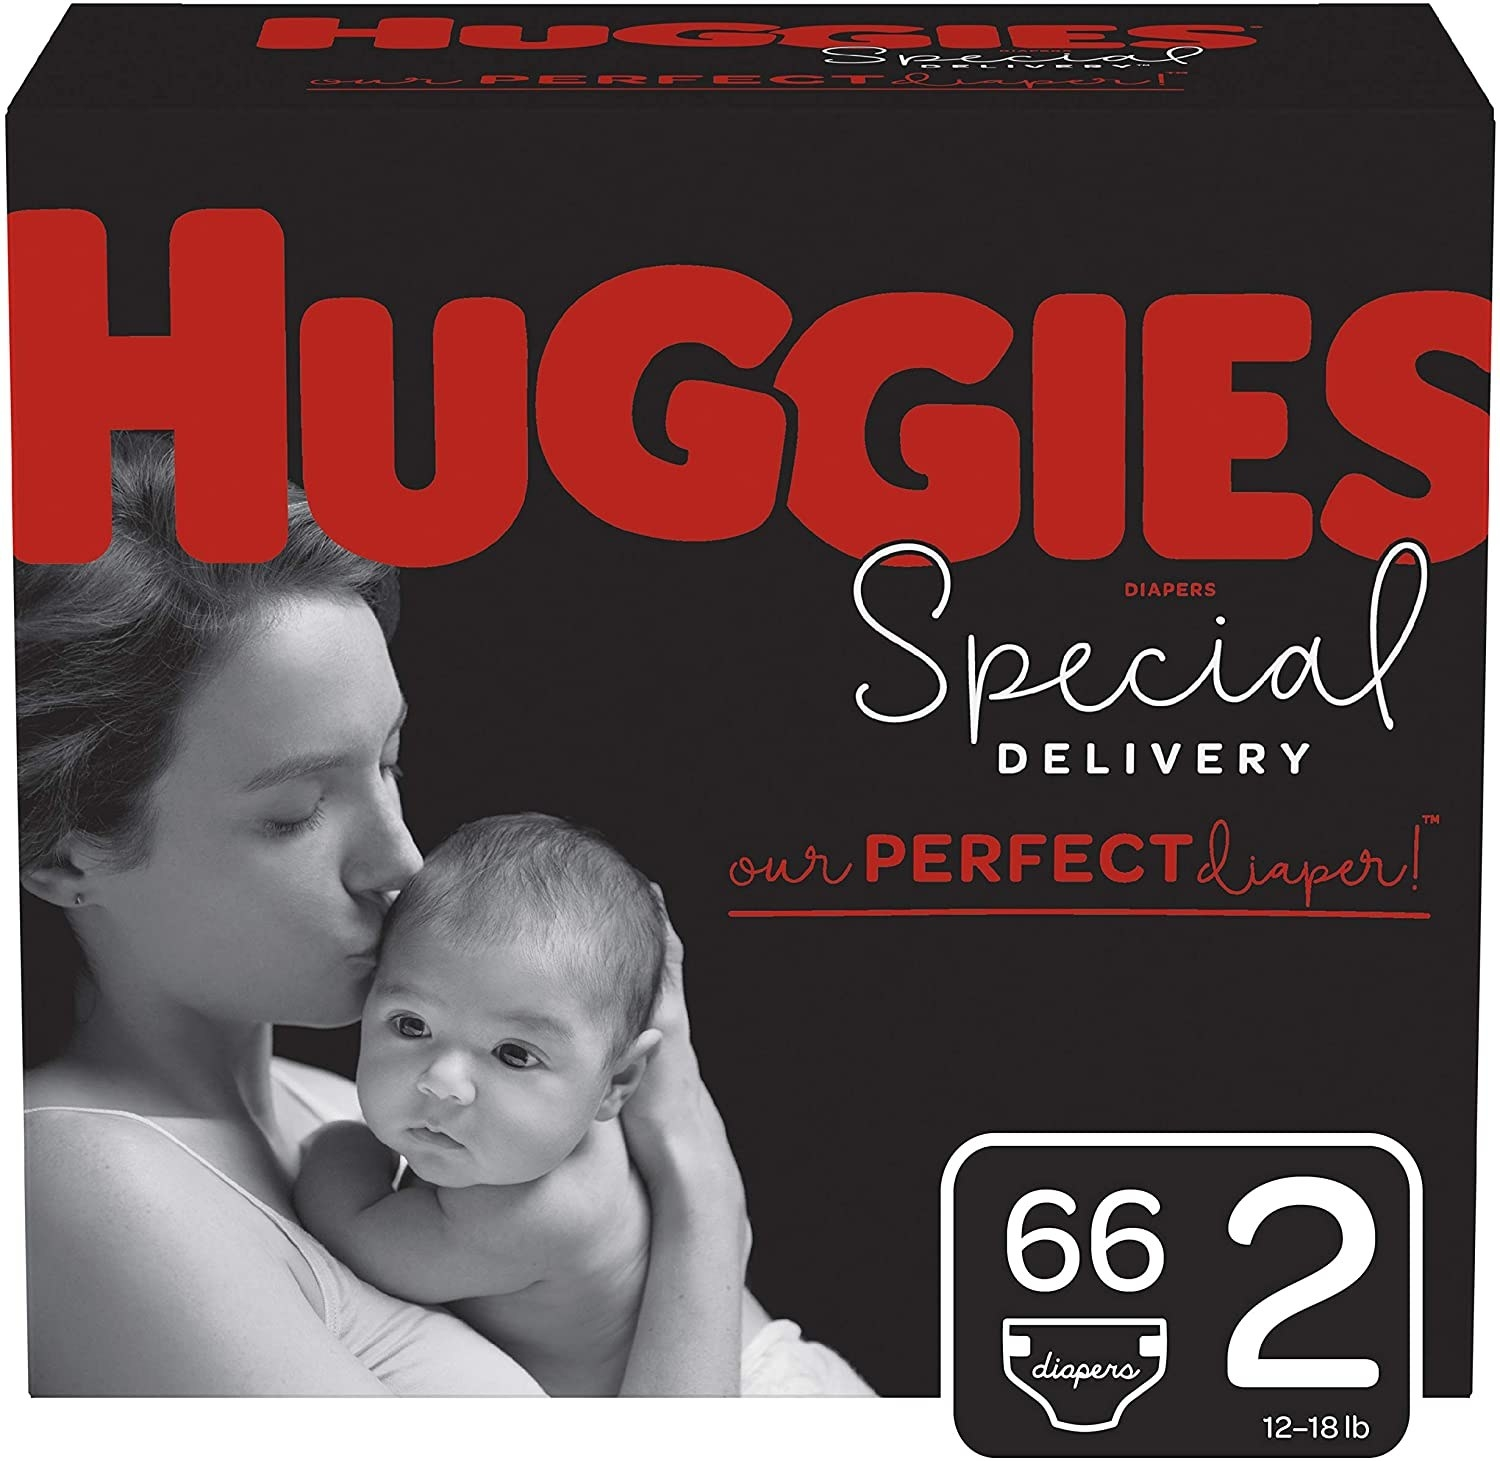 A box of Huggies diapers in a 66 pack